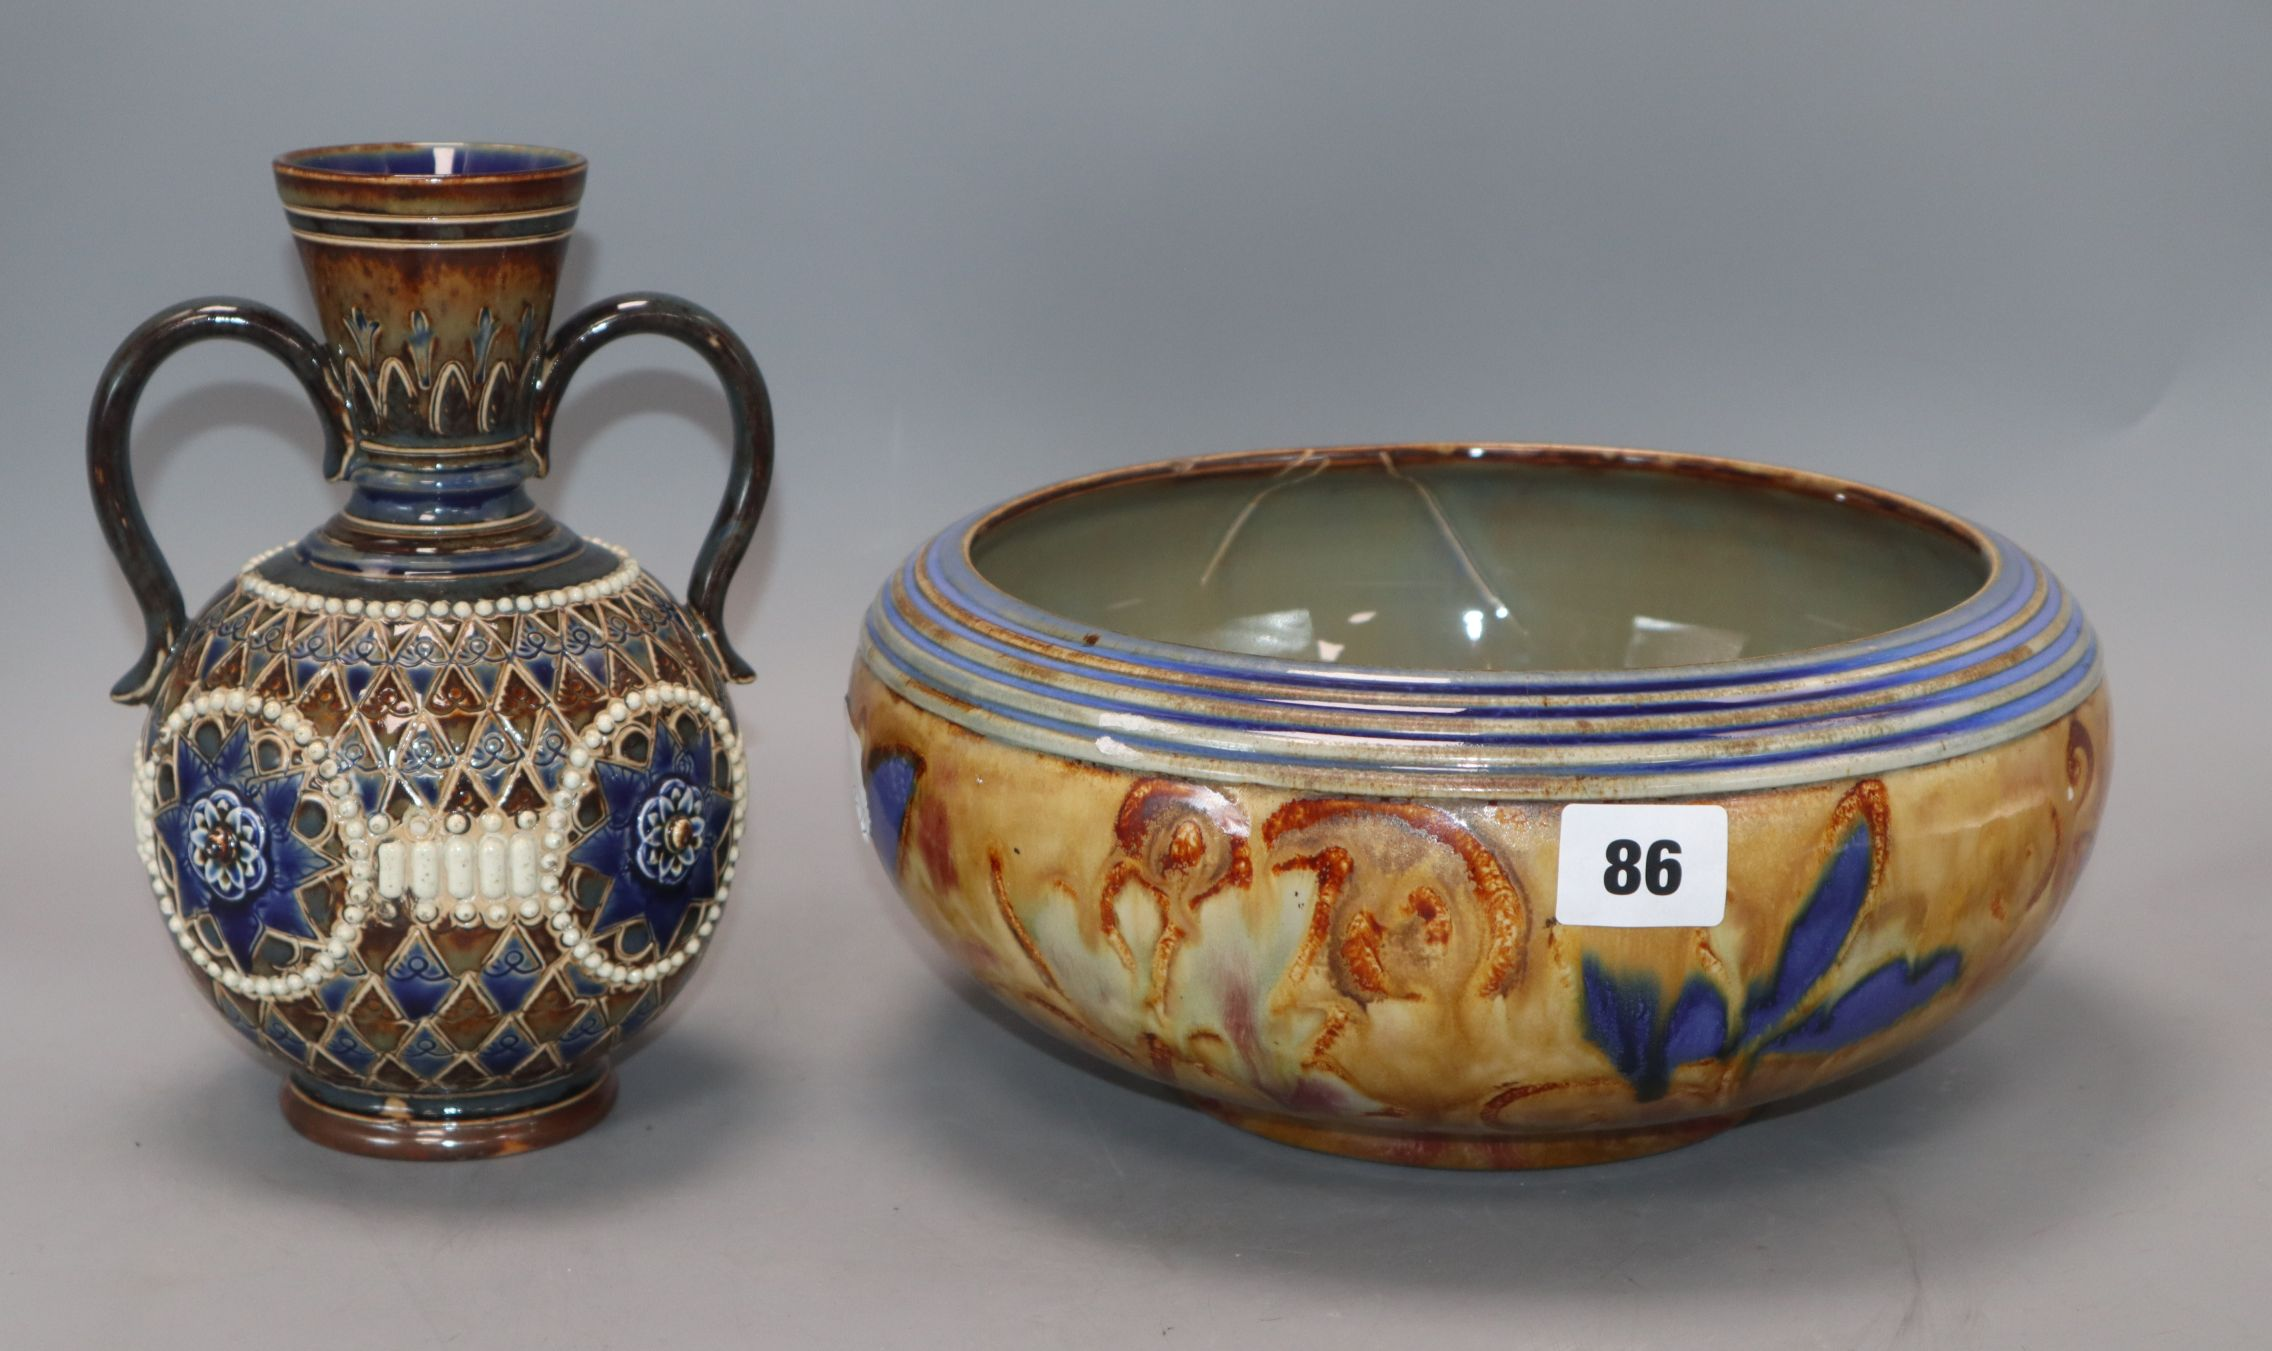 Lot 86 - A Doulton Lambeth two handled vase and a similar bowl